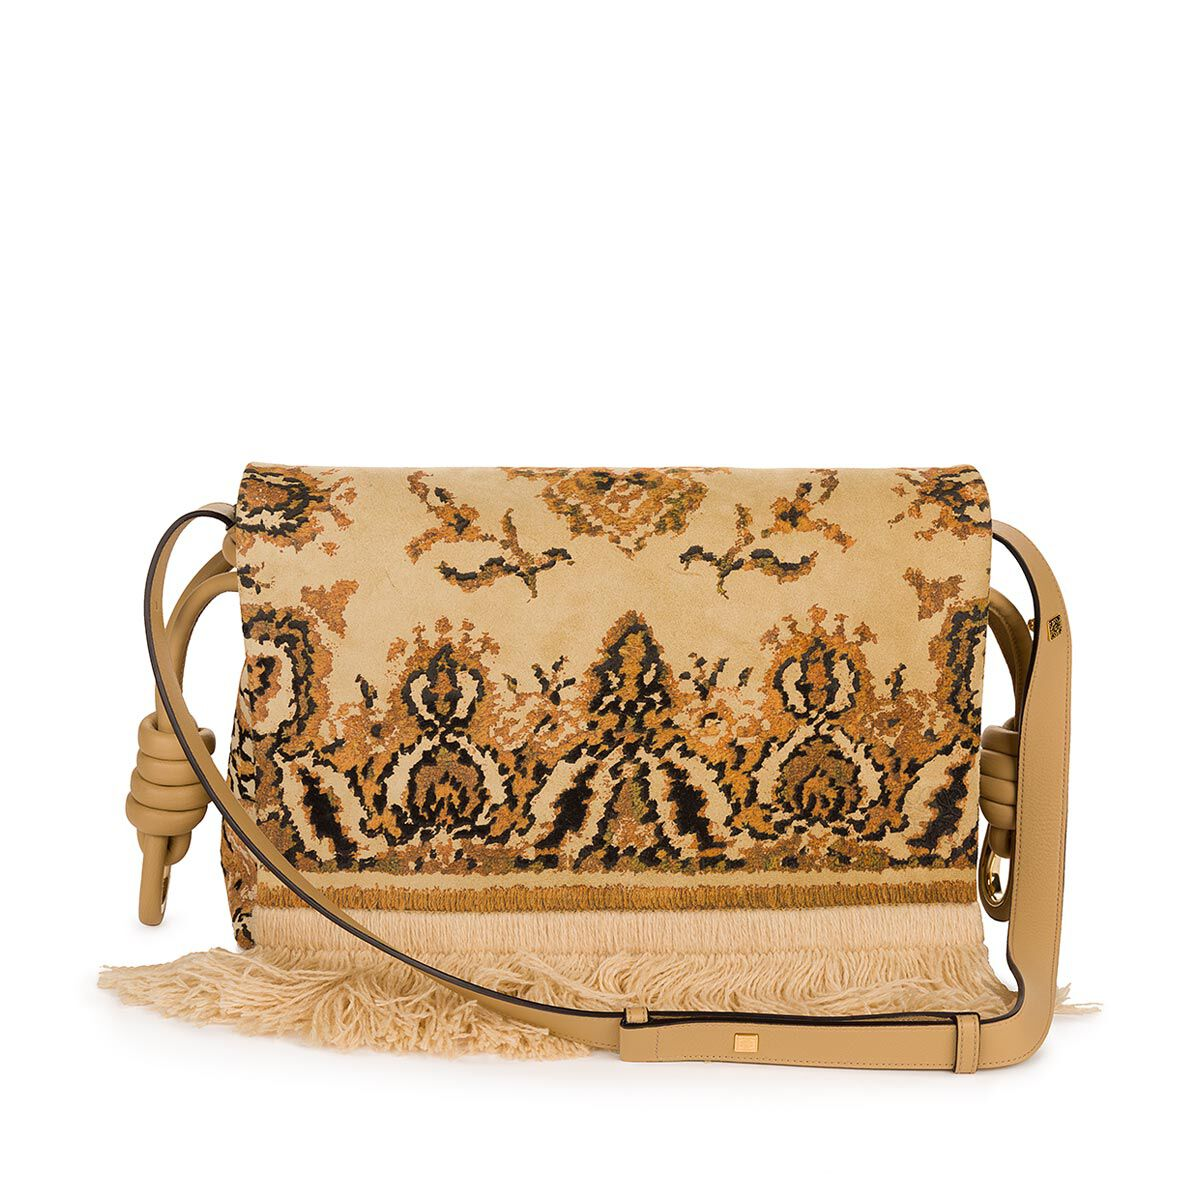 loewe flamenco flap tapestry bag gold multitone all